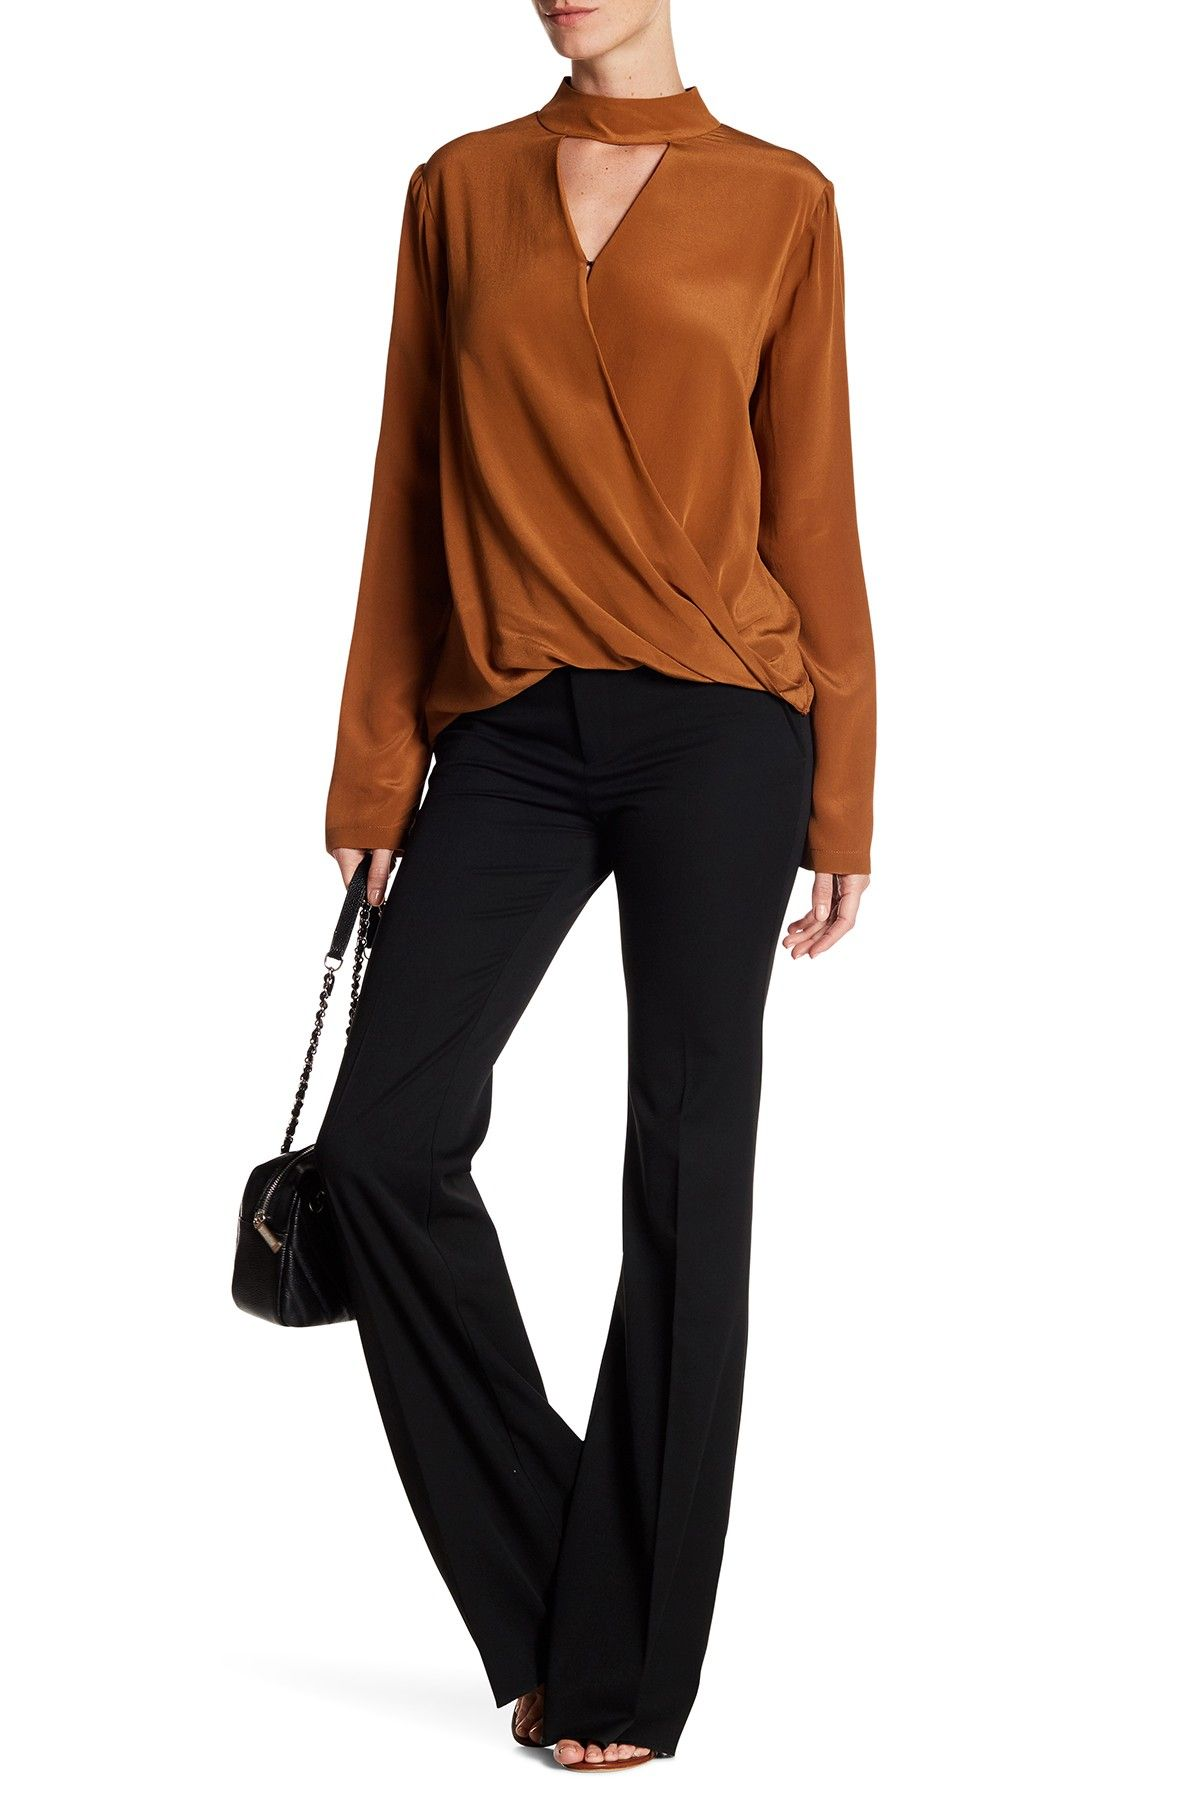 7b781ebcaa65 Emerson Thorpe Nalo Tailored Flare Trouser | Flat belly challenge ...